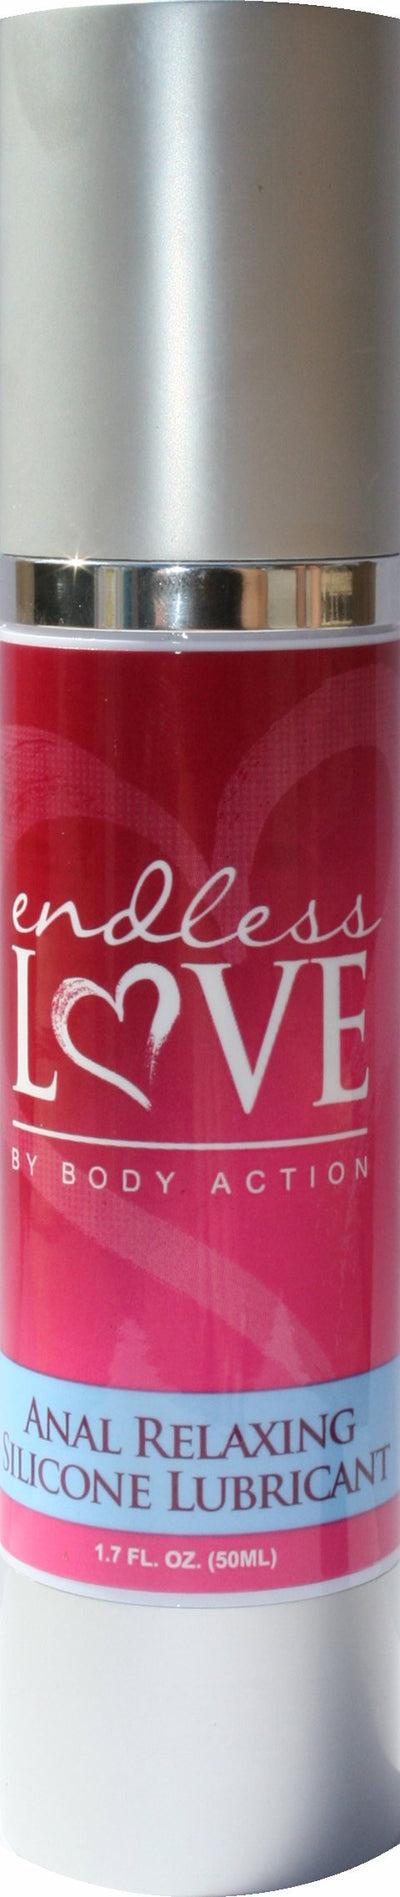 Endless Love Anal Relaxing Silicone Lube 1.7 Oz.